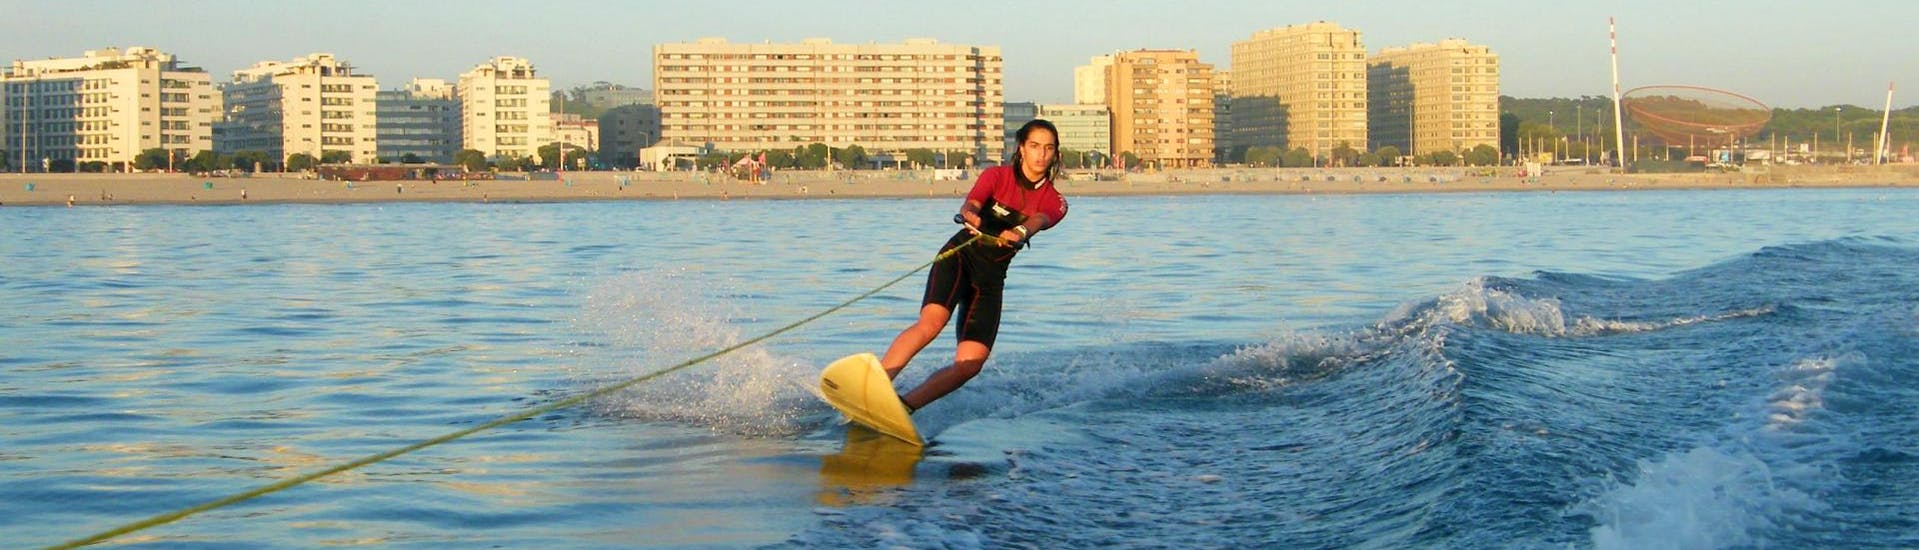 During the private wakeboard & wakesurf lessons, a woman is enjoying wakesurfing under the supervision of a qualified instructor from Surfaventura.